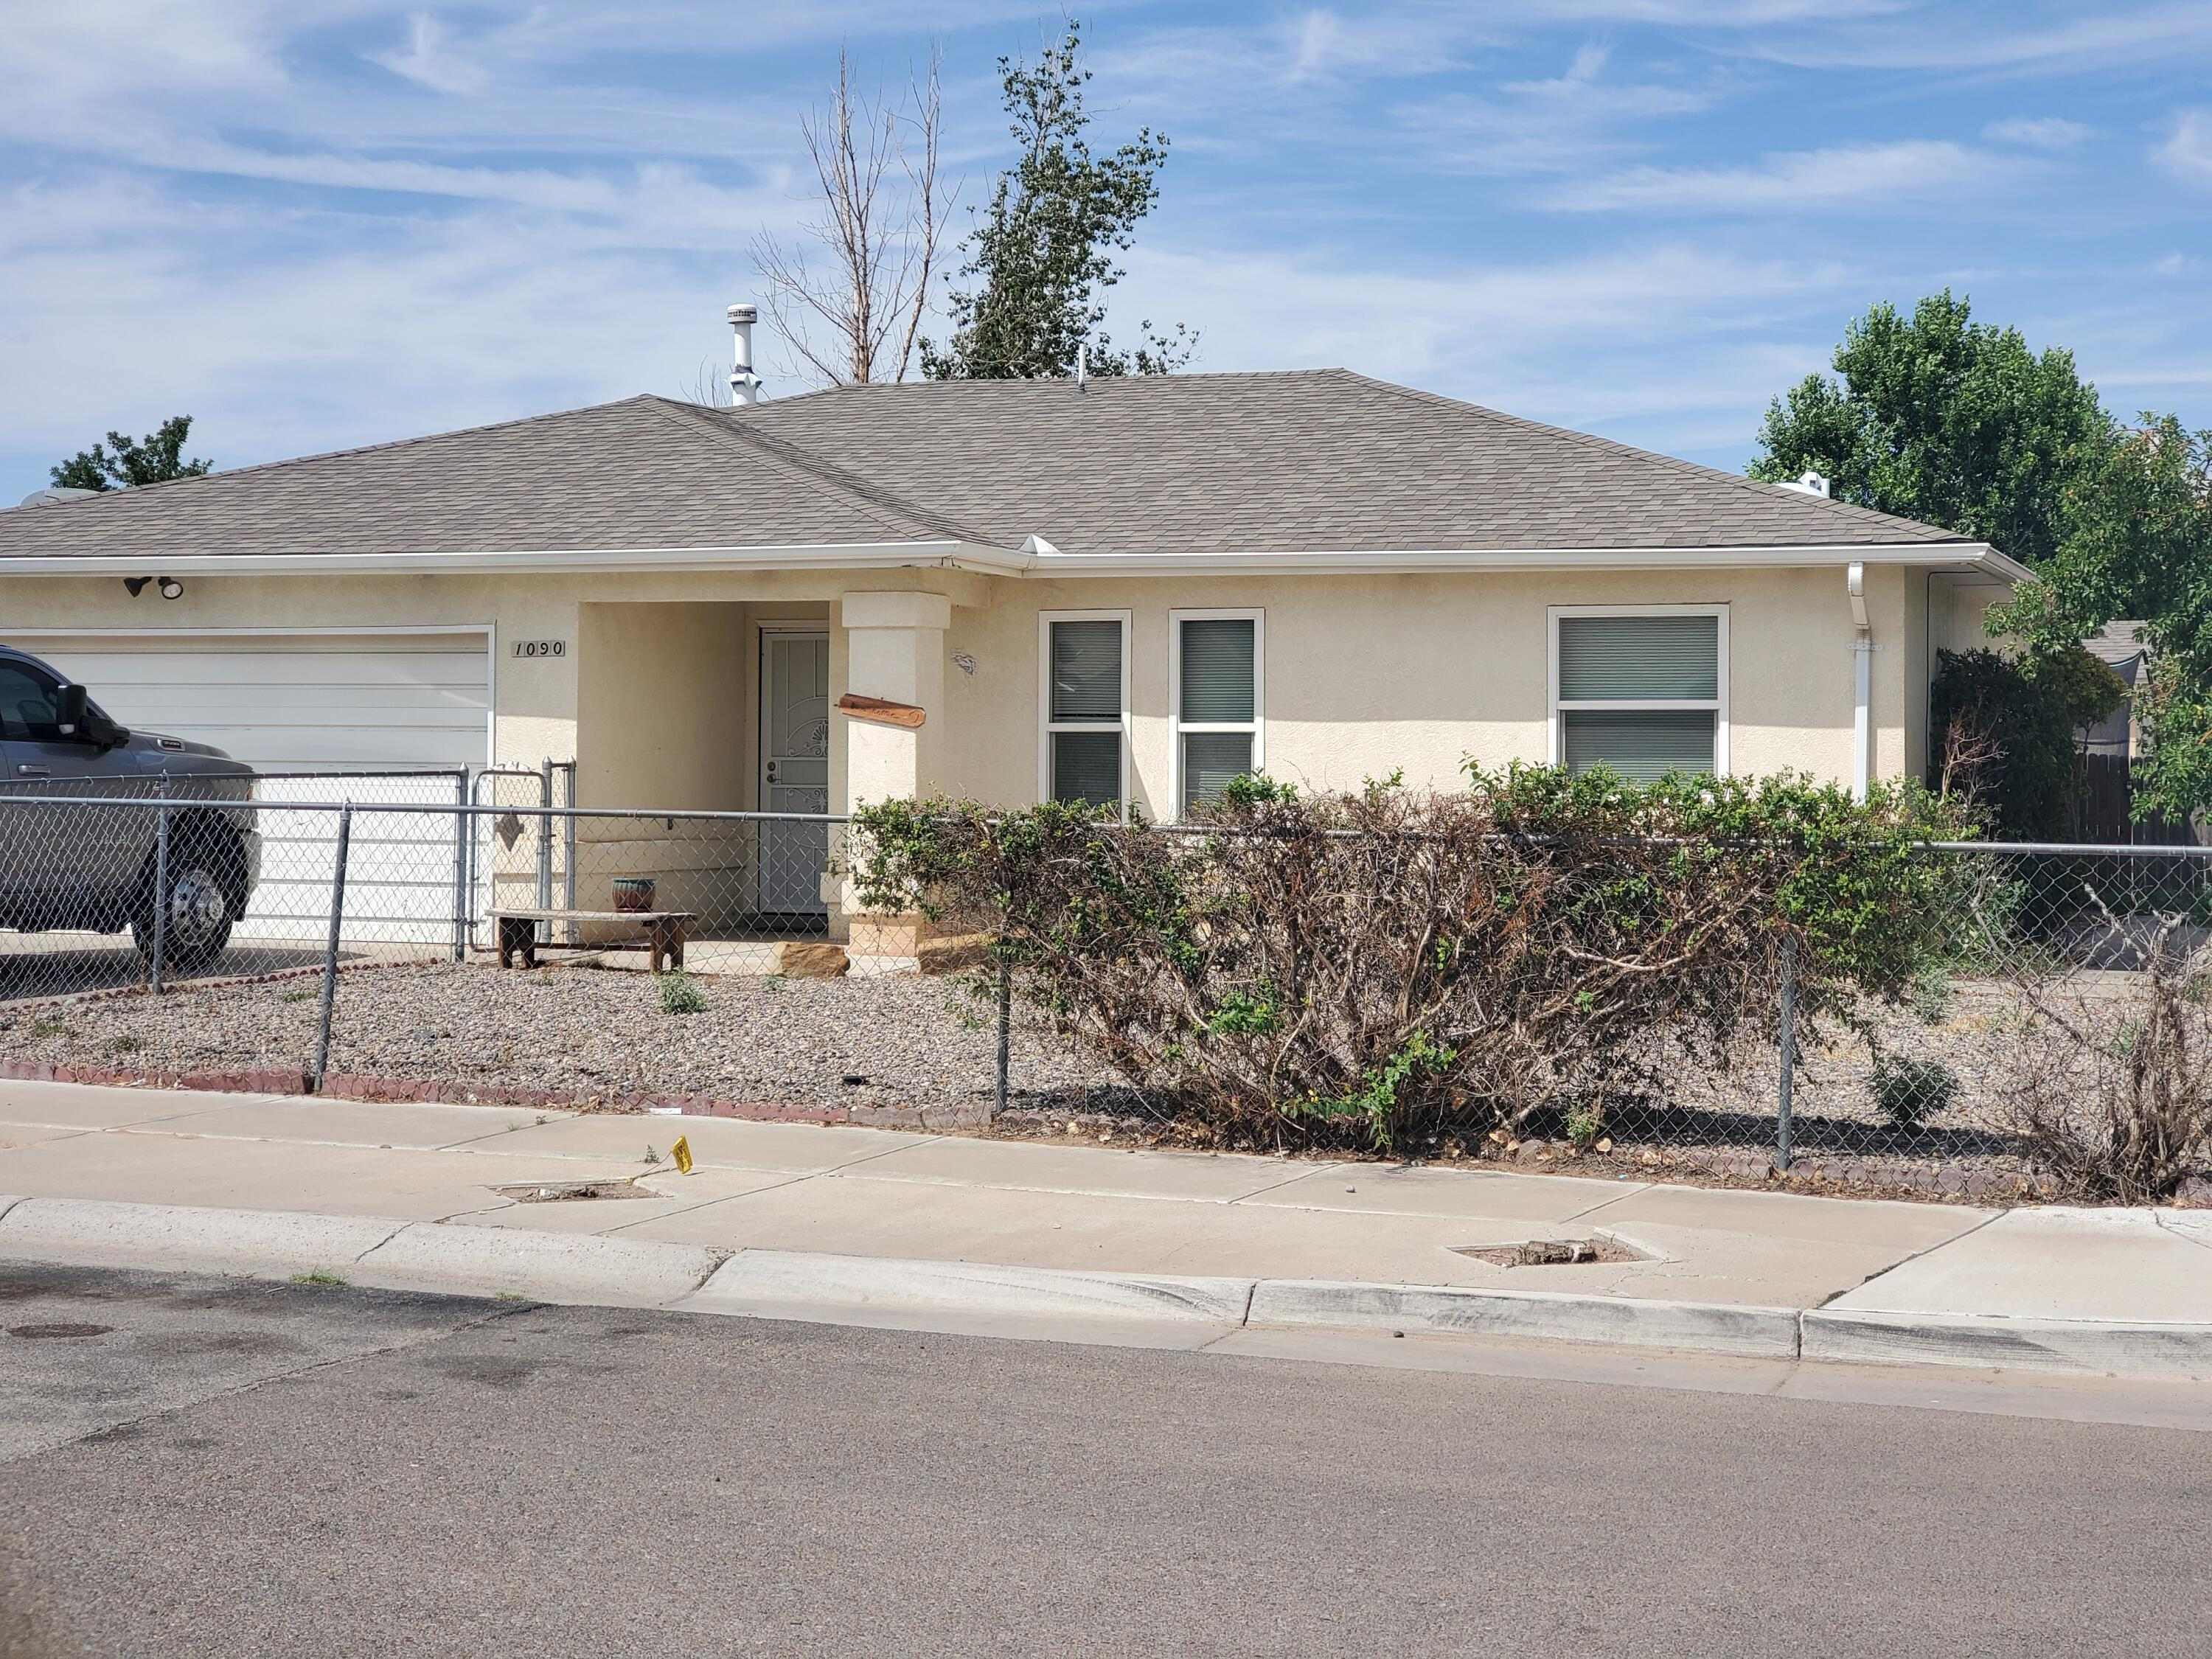 Great 3 bedroom home, with bonus room (not included in sqft), in the heart of Los Lunas. This home is located on a good size lot, and comes with a shed! The property is fully fenced and has backyard access. Stainless steel appliances with granite tile counter tops in the kitchen. Roof and A/C was recently replaced 2 years ago. Come see this home before it's gone!